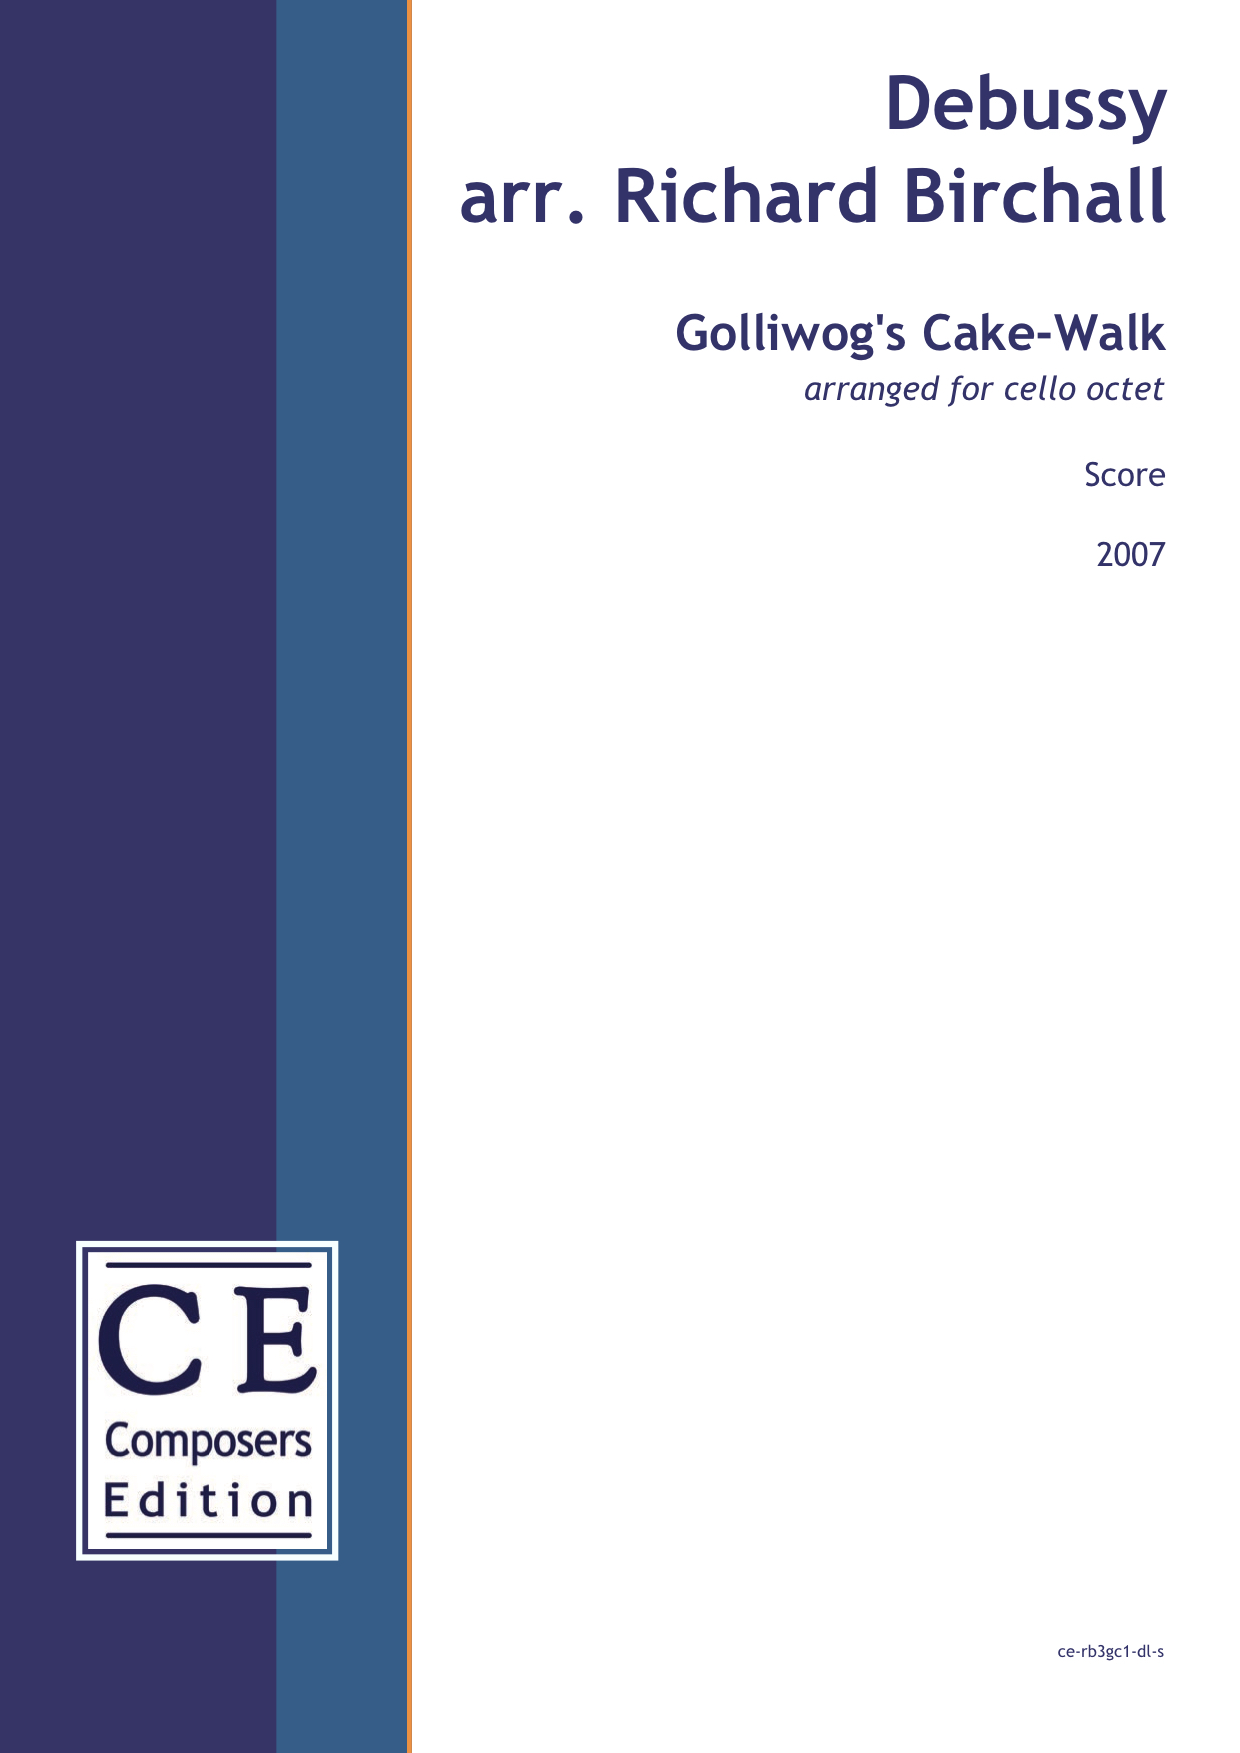 Claude Debussy arr. Richard Birchall: Golliwog's Cake-Walk arranged for cello octet